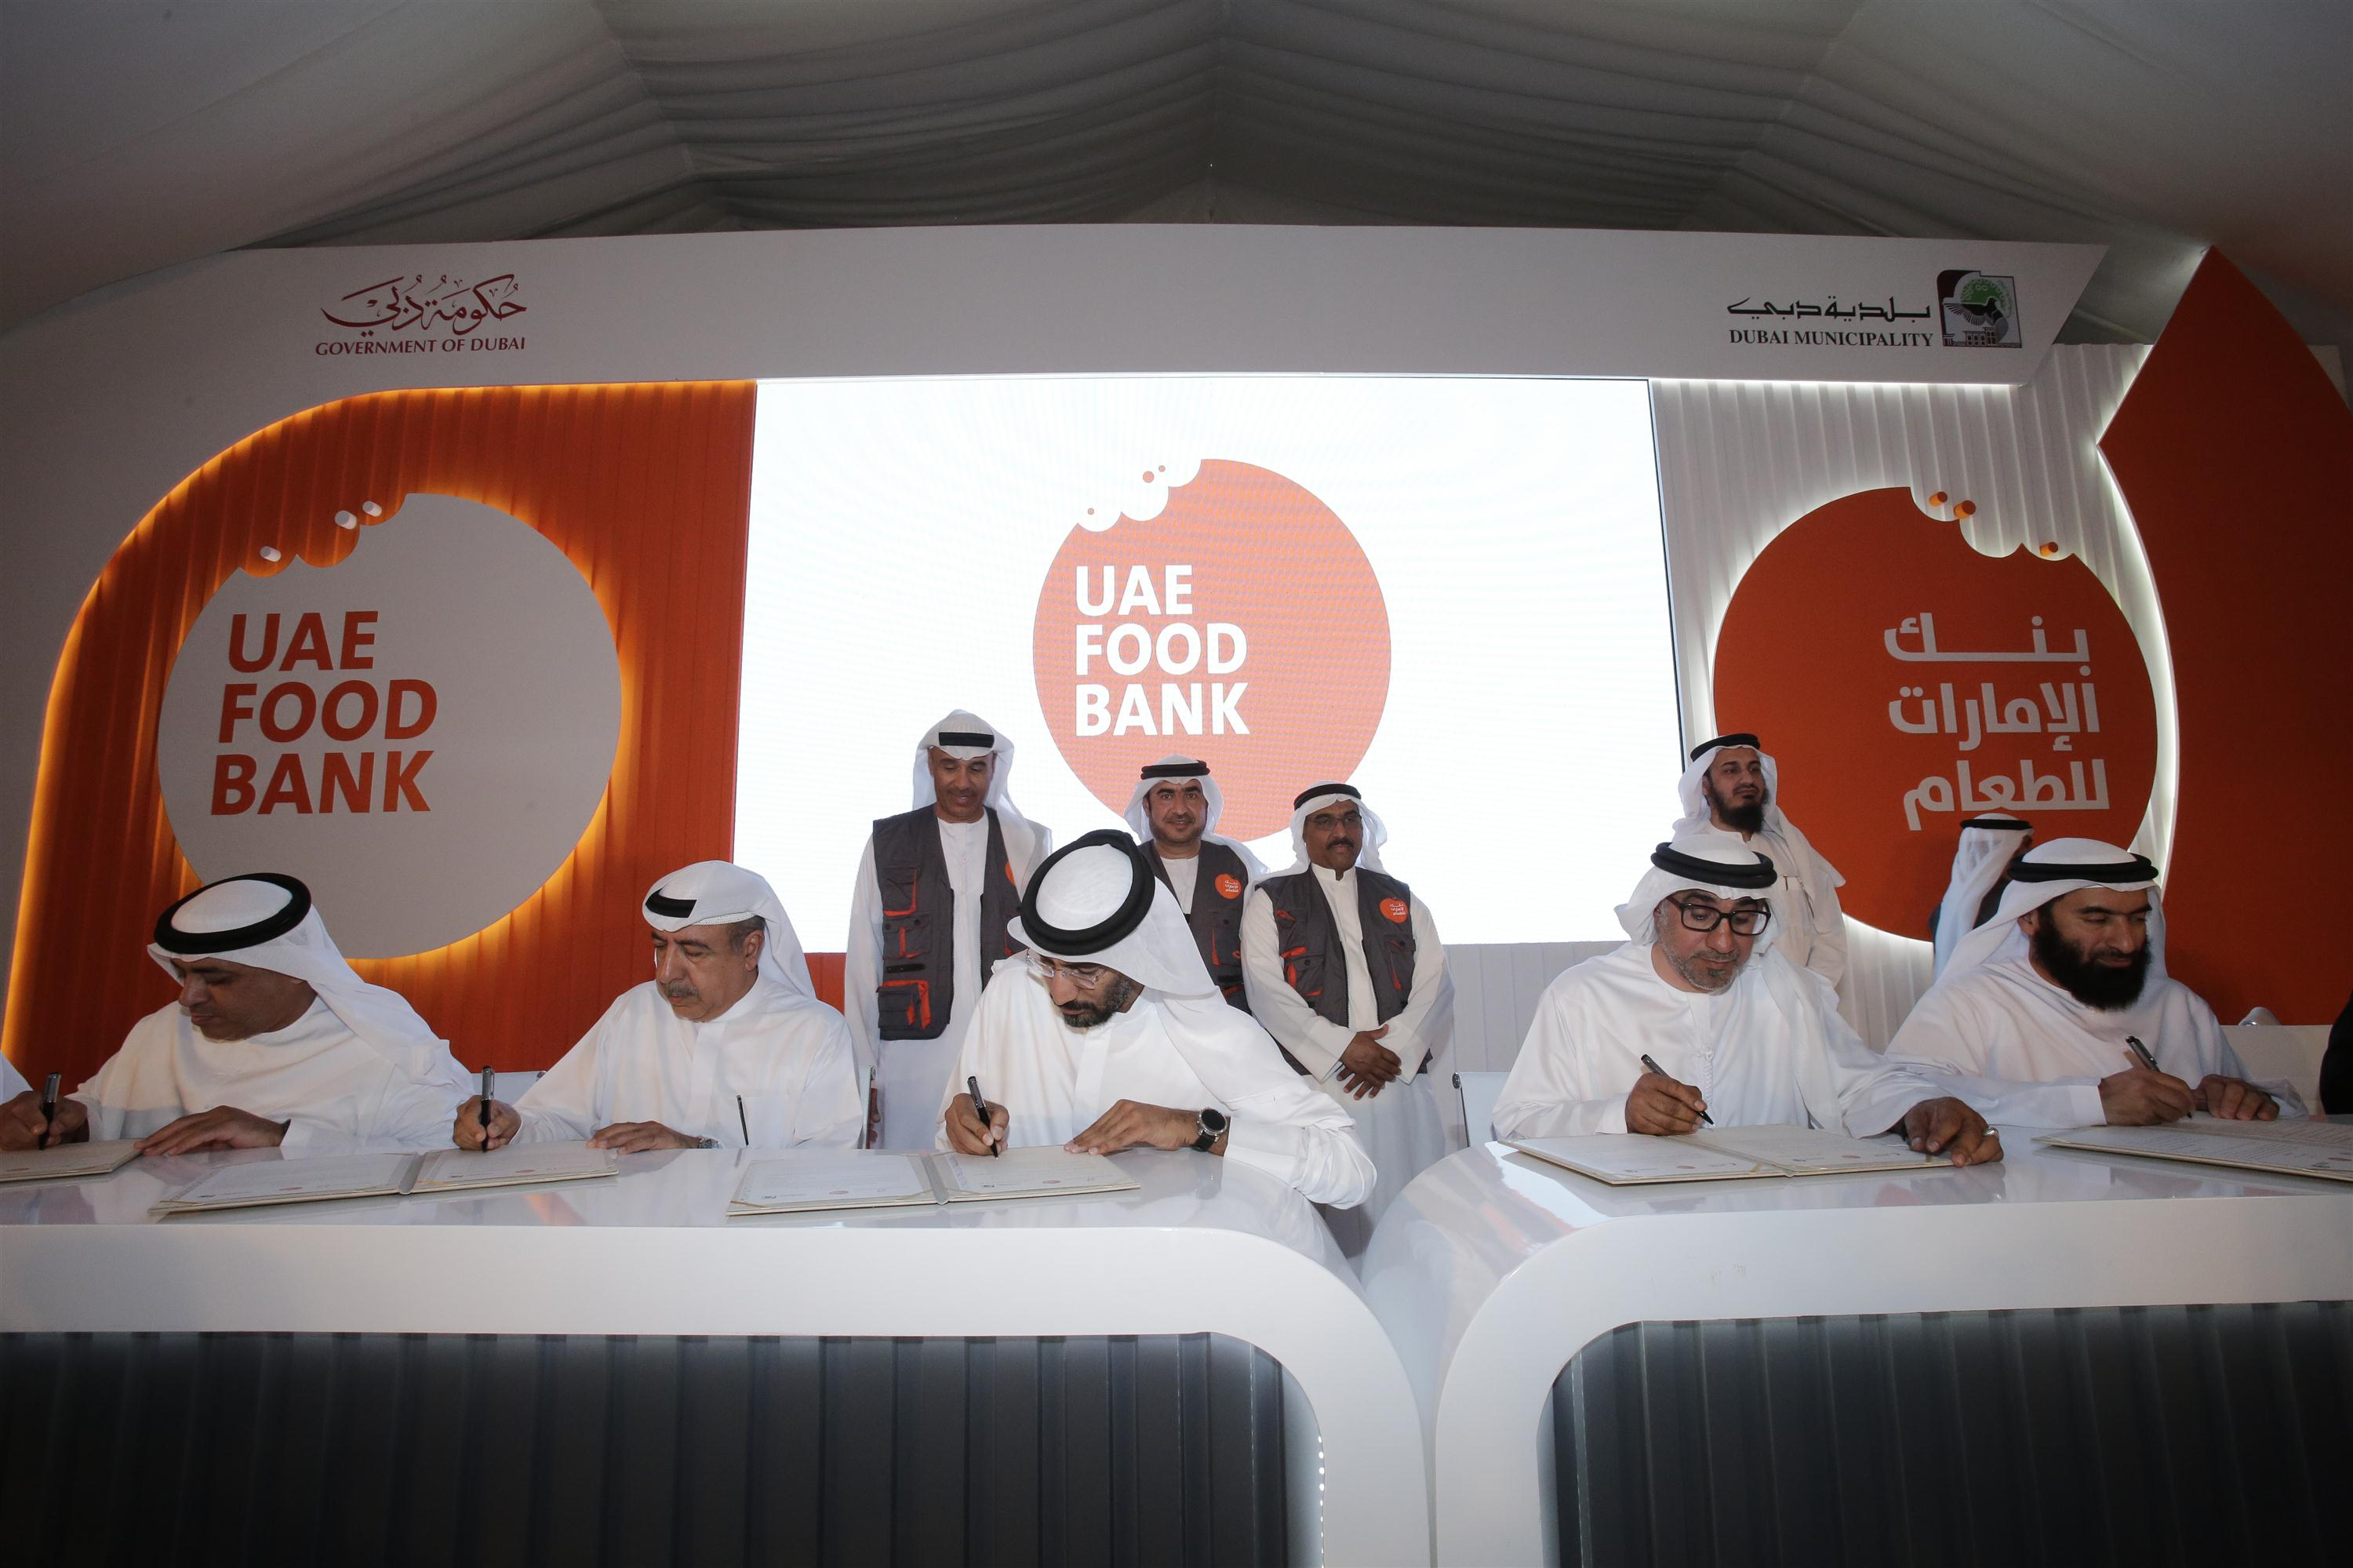 dubai municipality opens first uae foodbank branch2.jpg